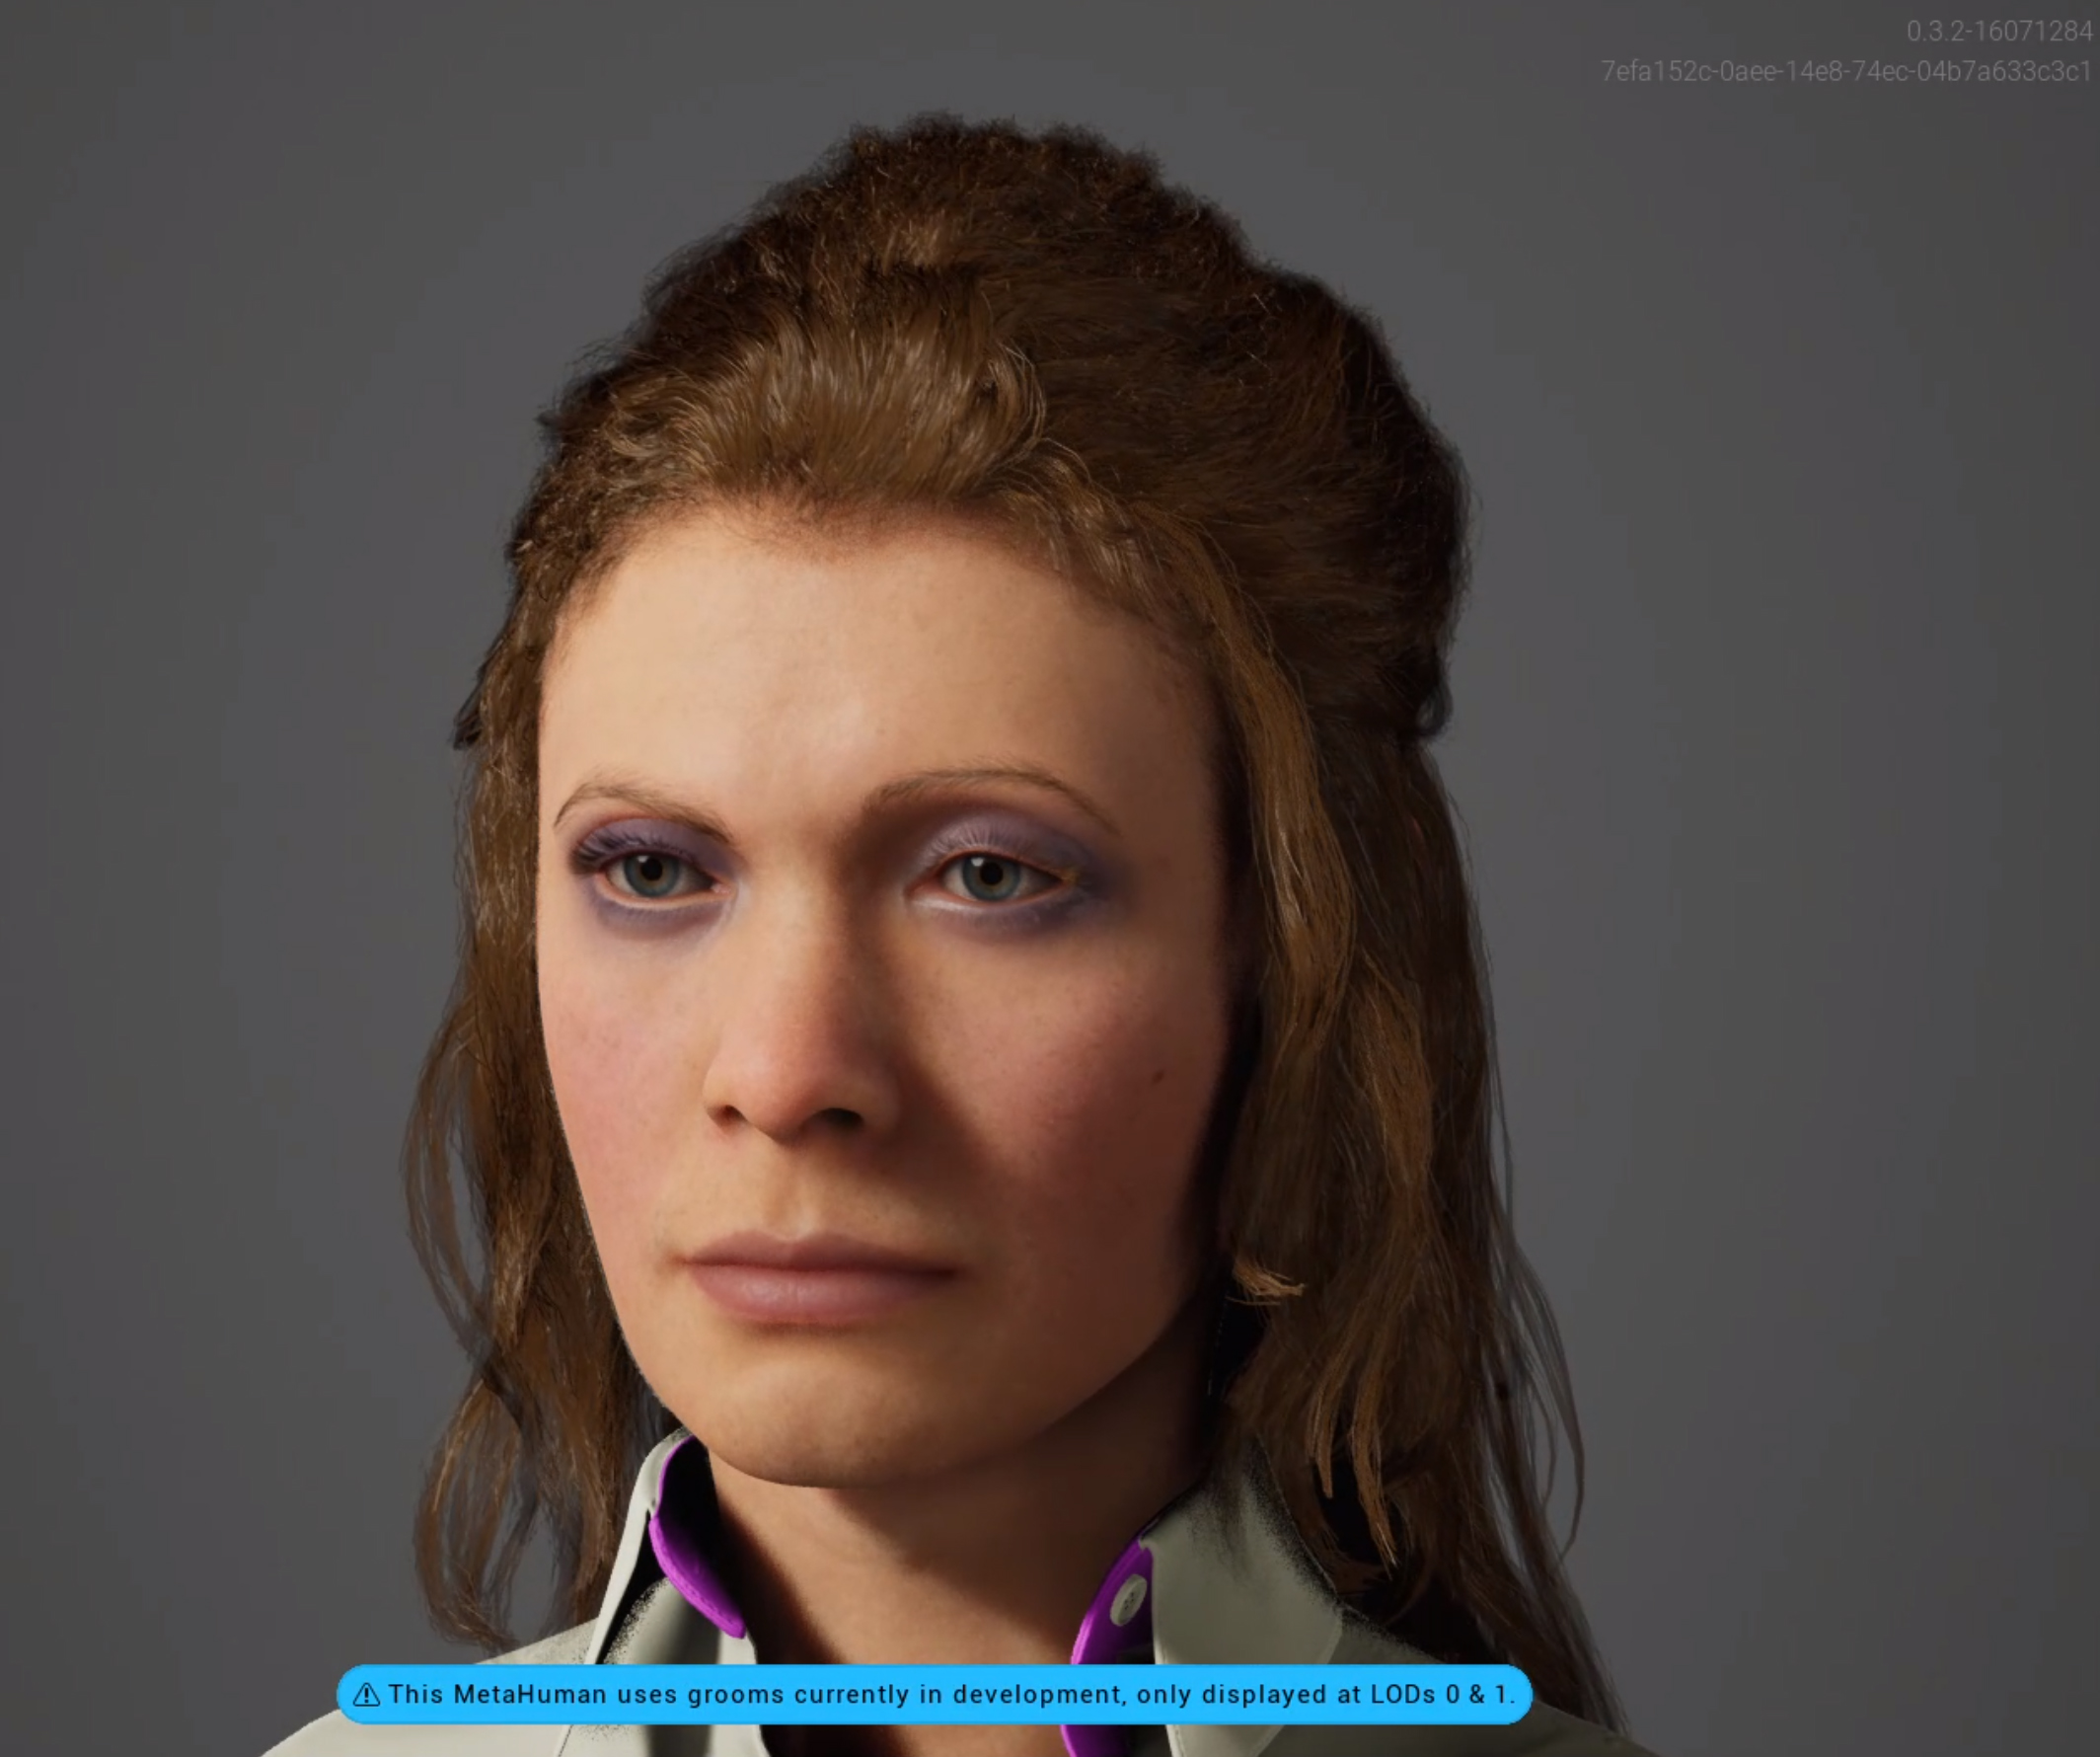 This is Claudine a MetaHuman created with the Unreal Engine Metahuman Creator